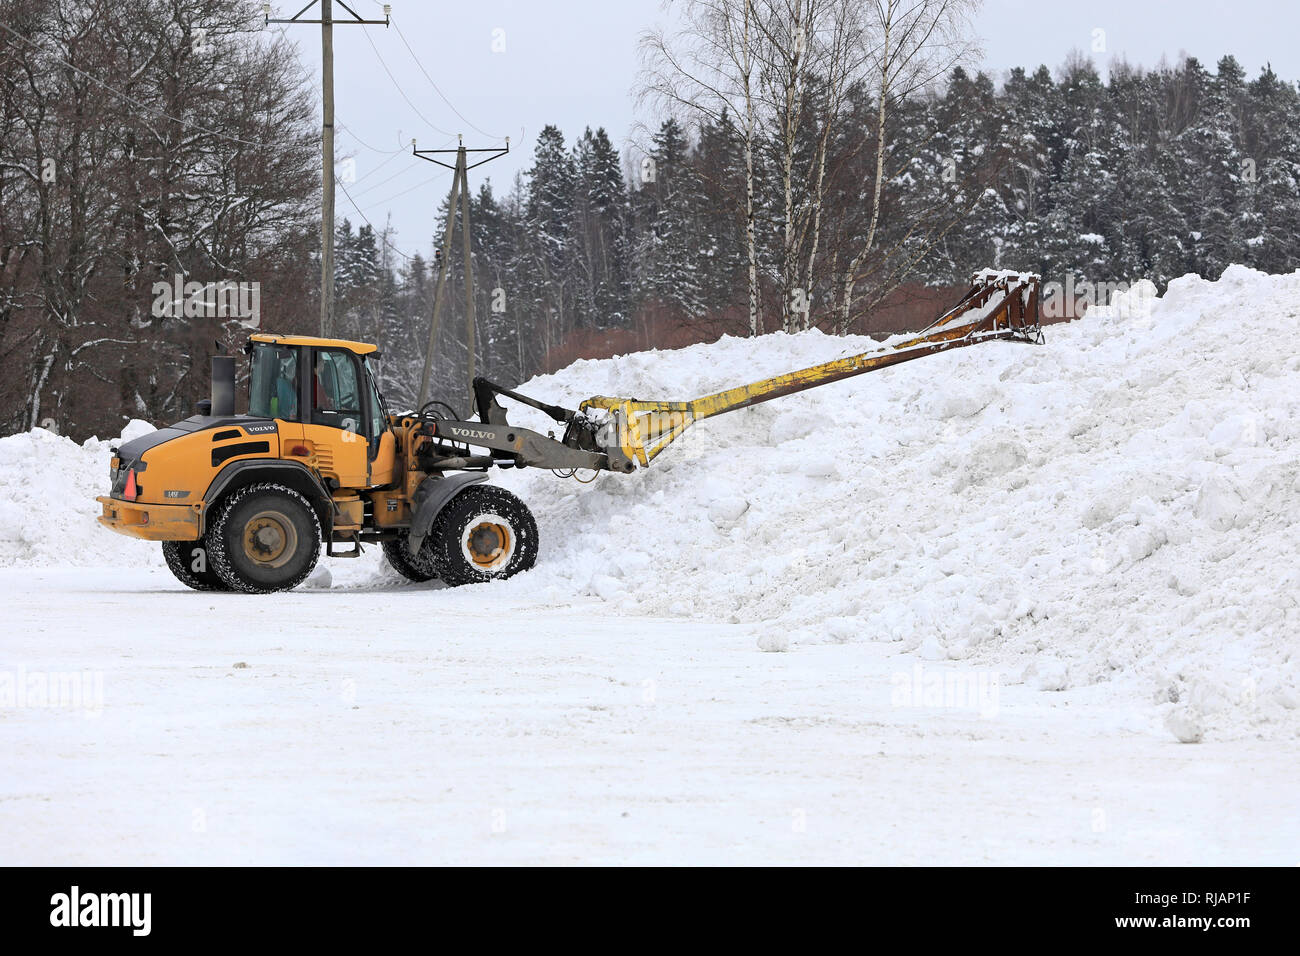 Salo, Finland - February 2, 2019: Volvo L45F wheel loader with snow handling attachment at work at municipal snow dumping area in South of Finland. - Stock Image